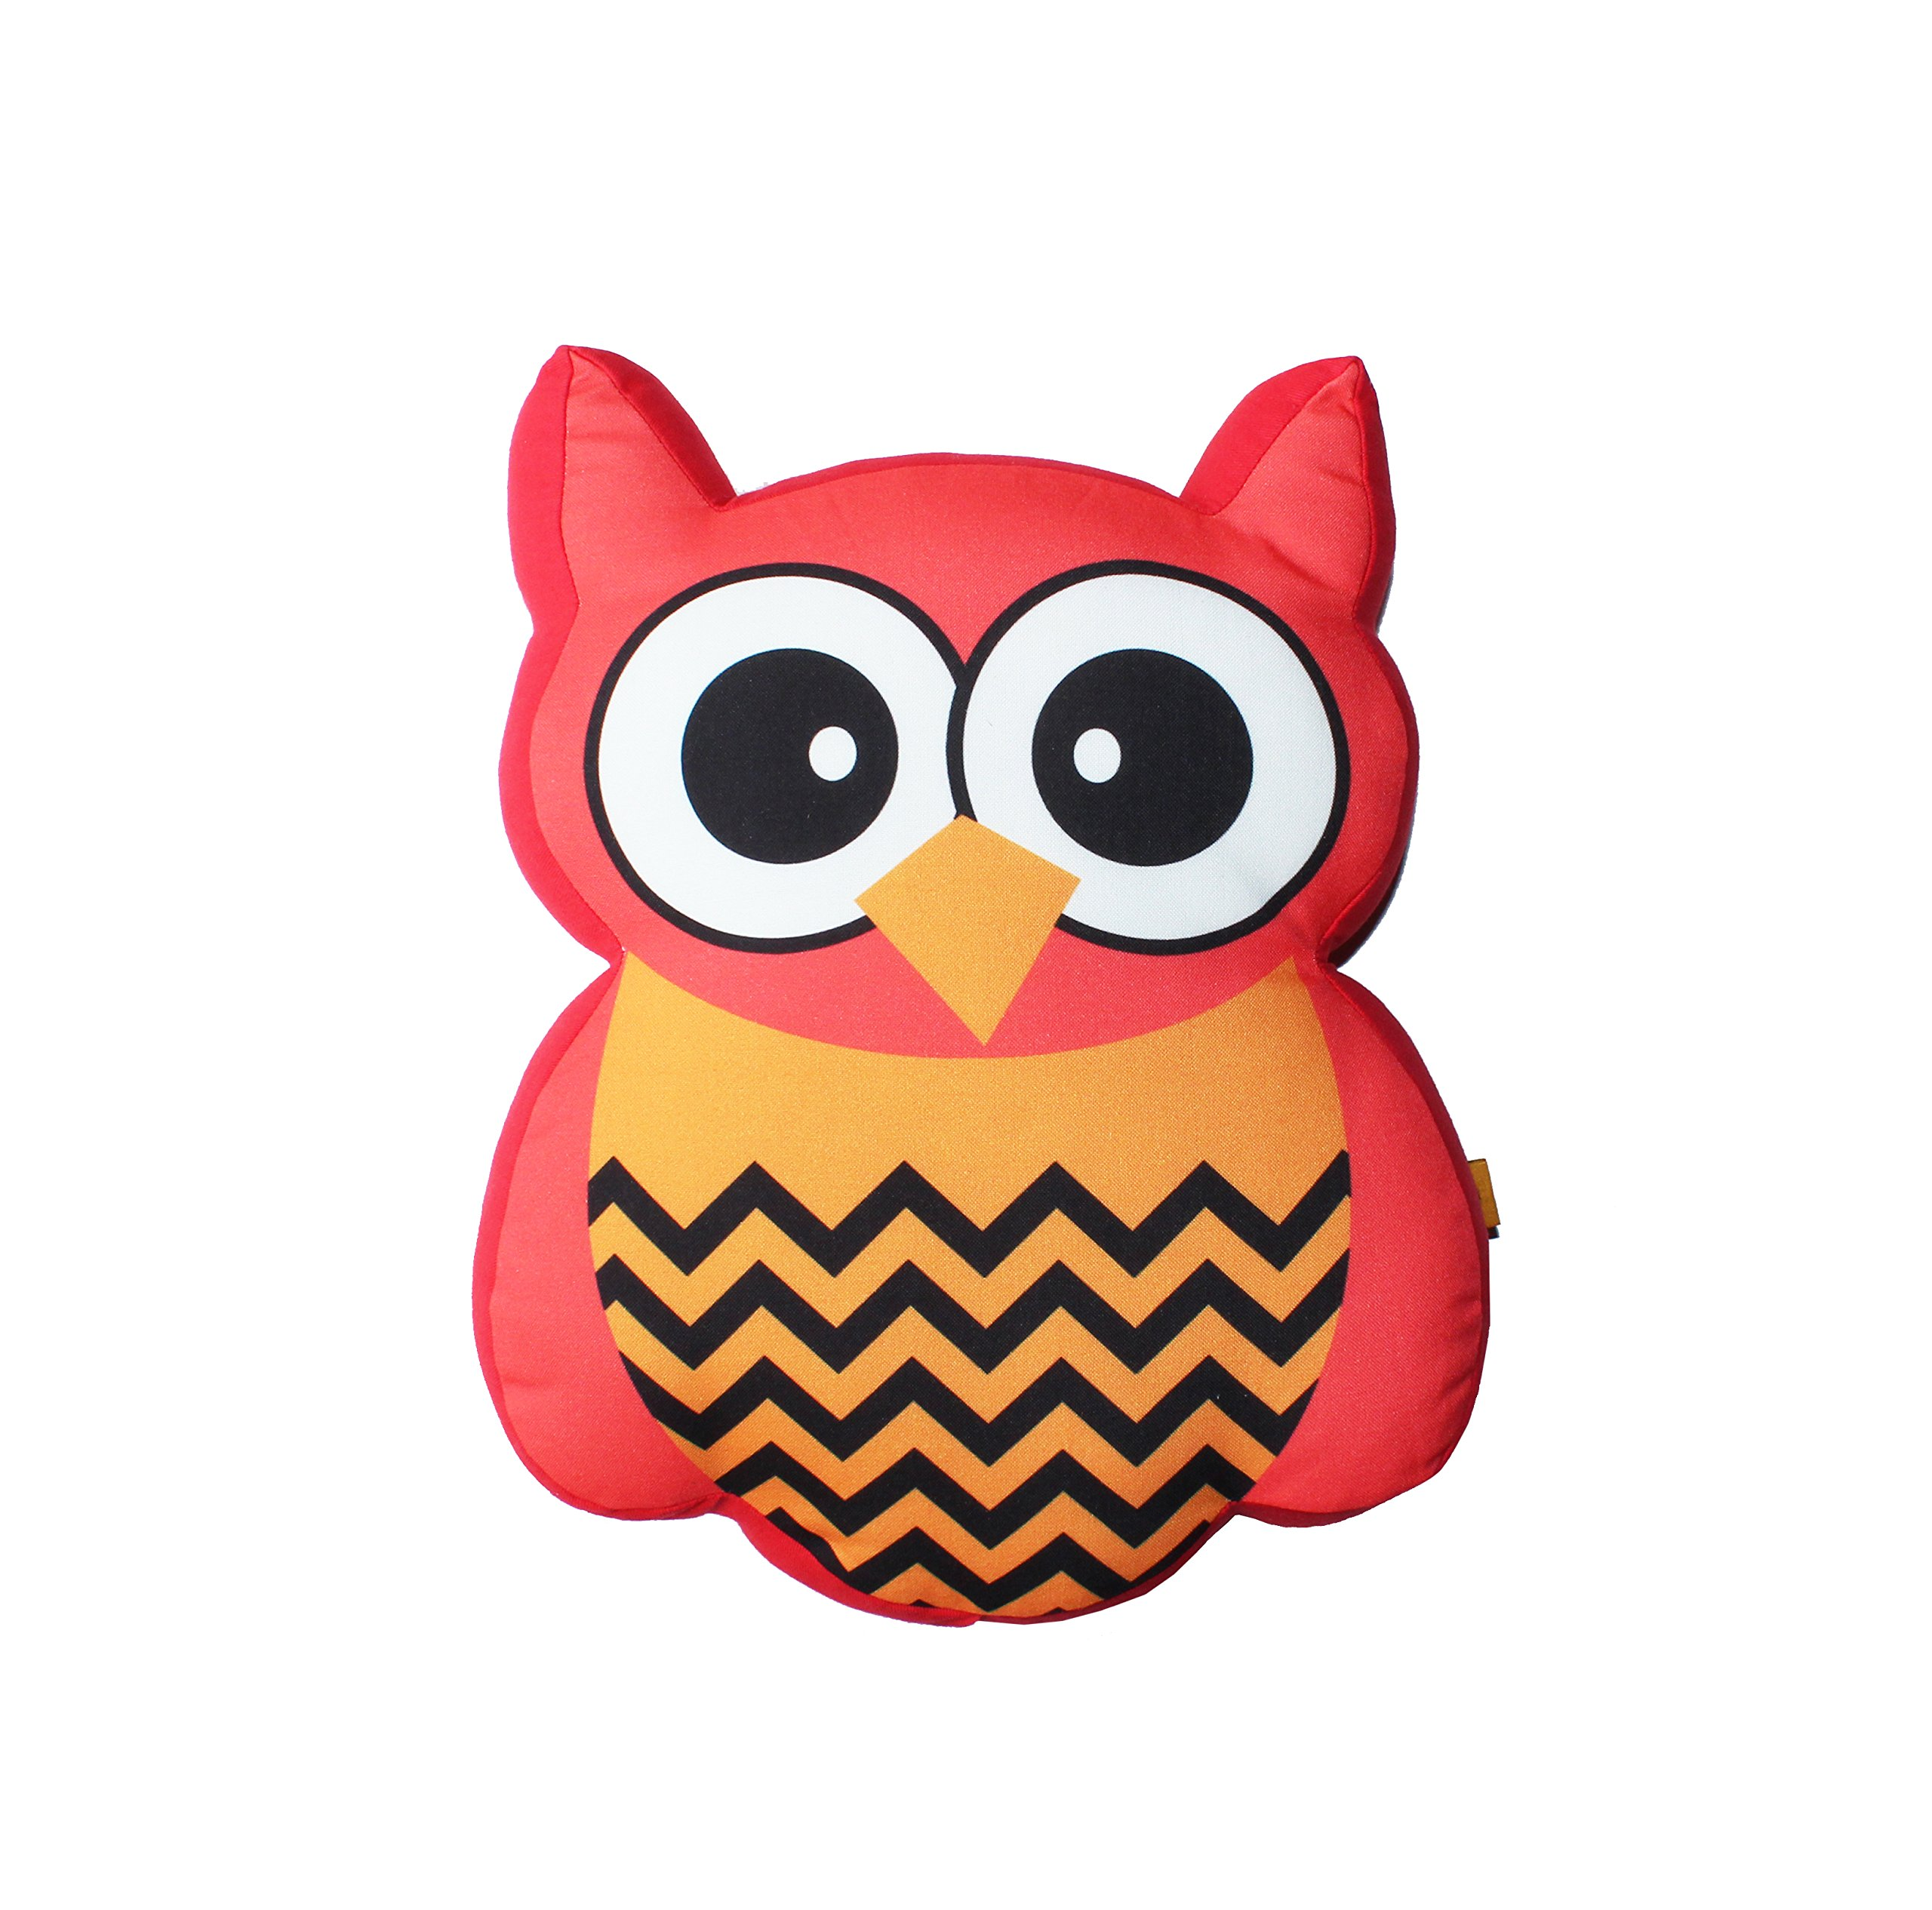 Cuddle Cushion, Owl' Digital Printed, Cushion For Kids, Play And Sleep Time For Kids And Home